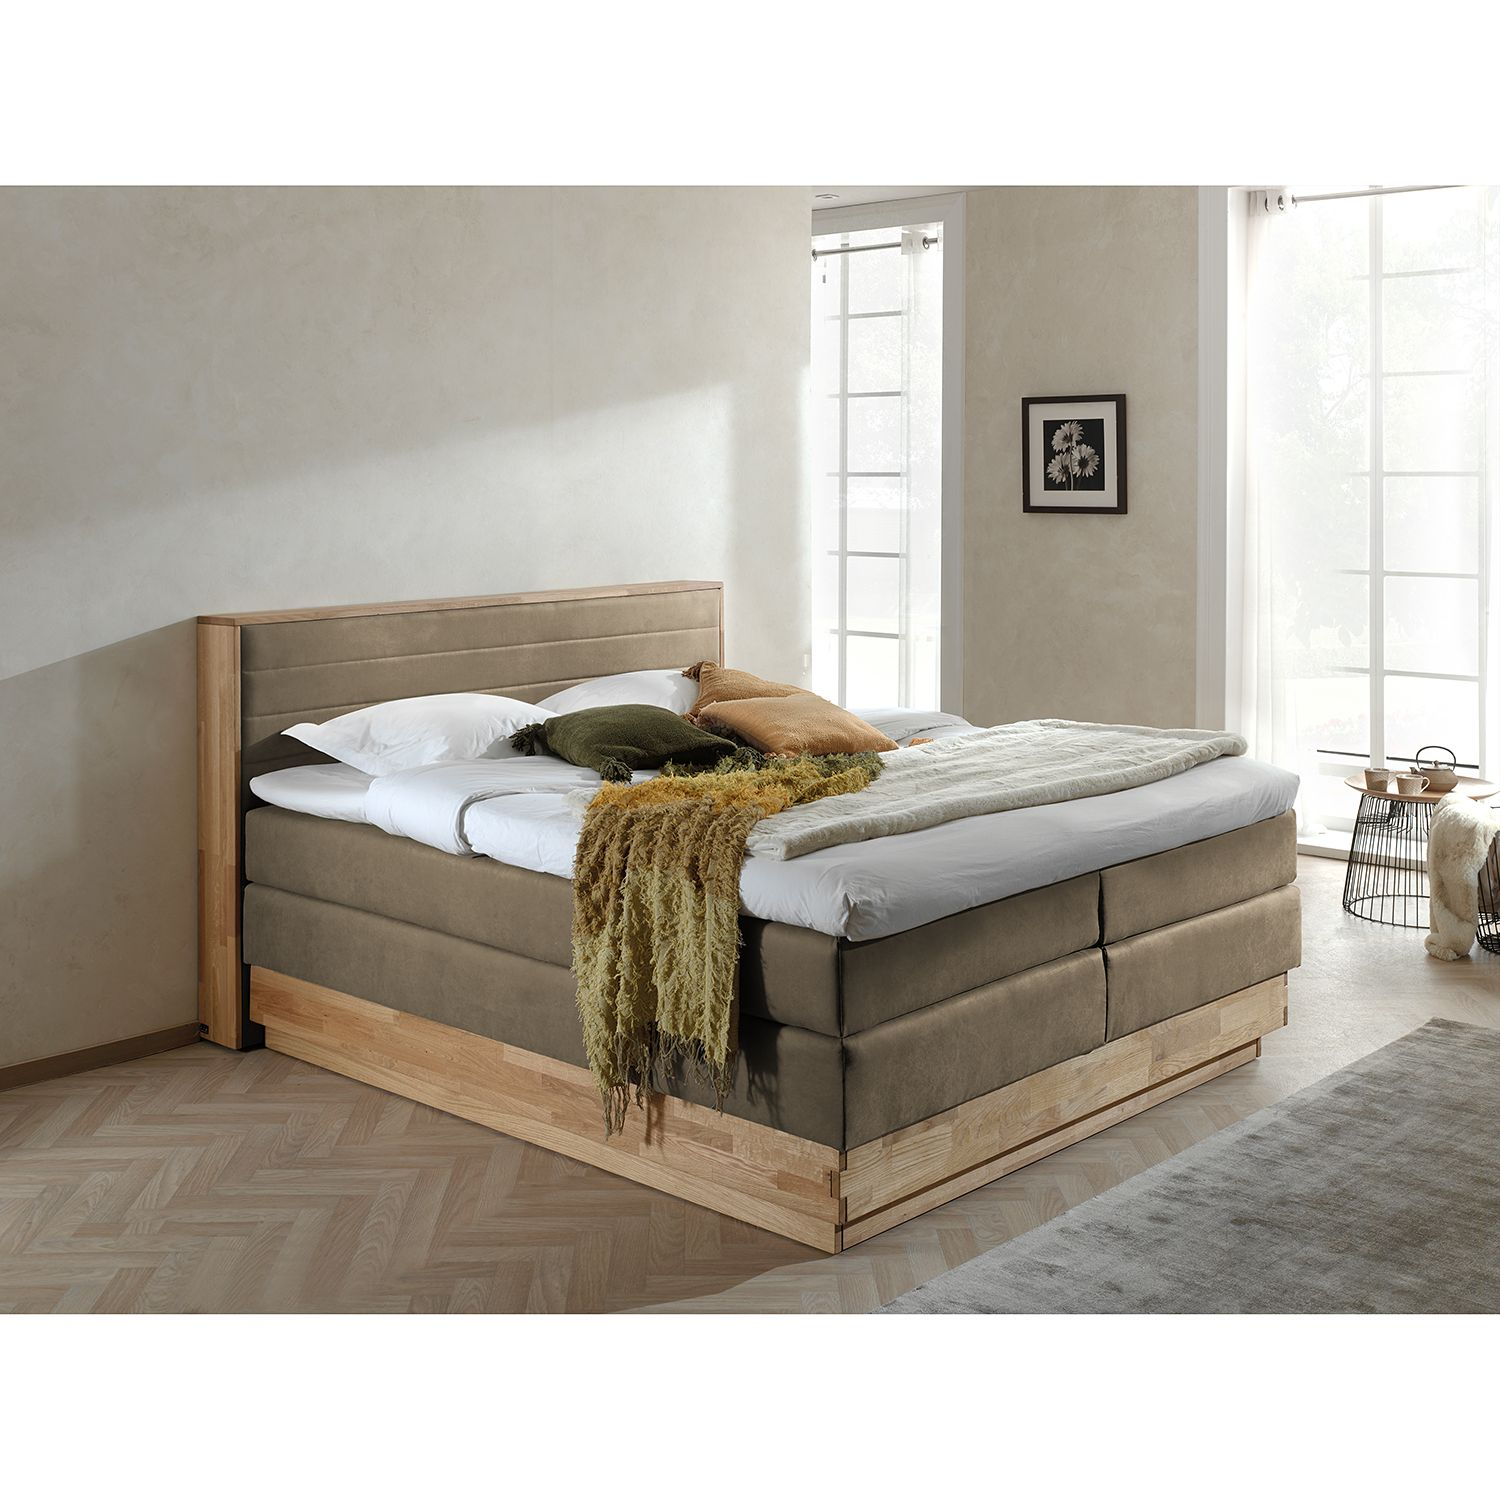 Boxspringbett Moneta